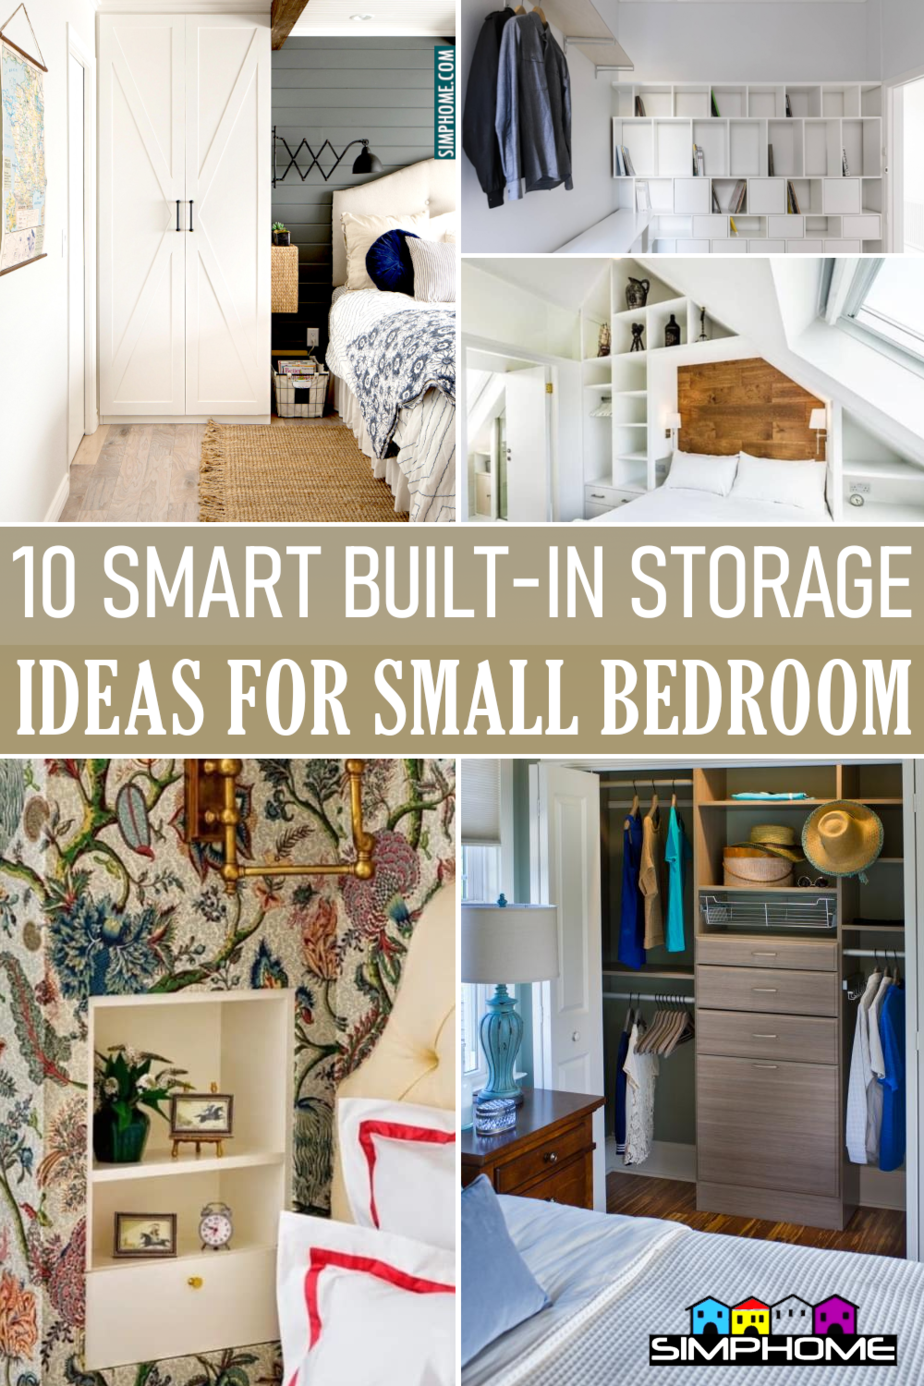 Smart Built In Storage Ideas for Bedroom via Simphome.comFeatured